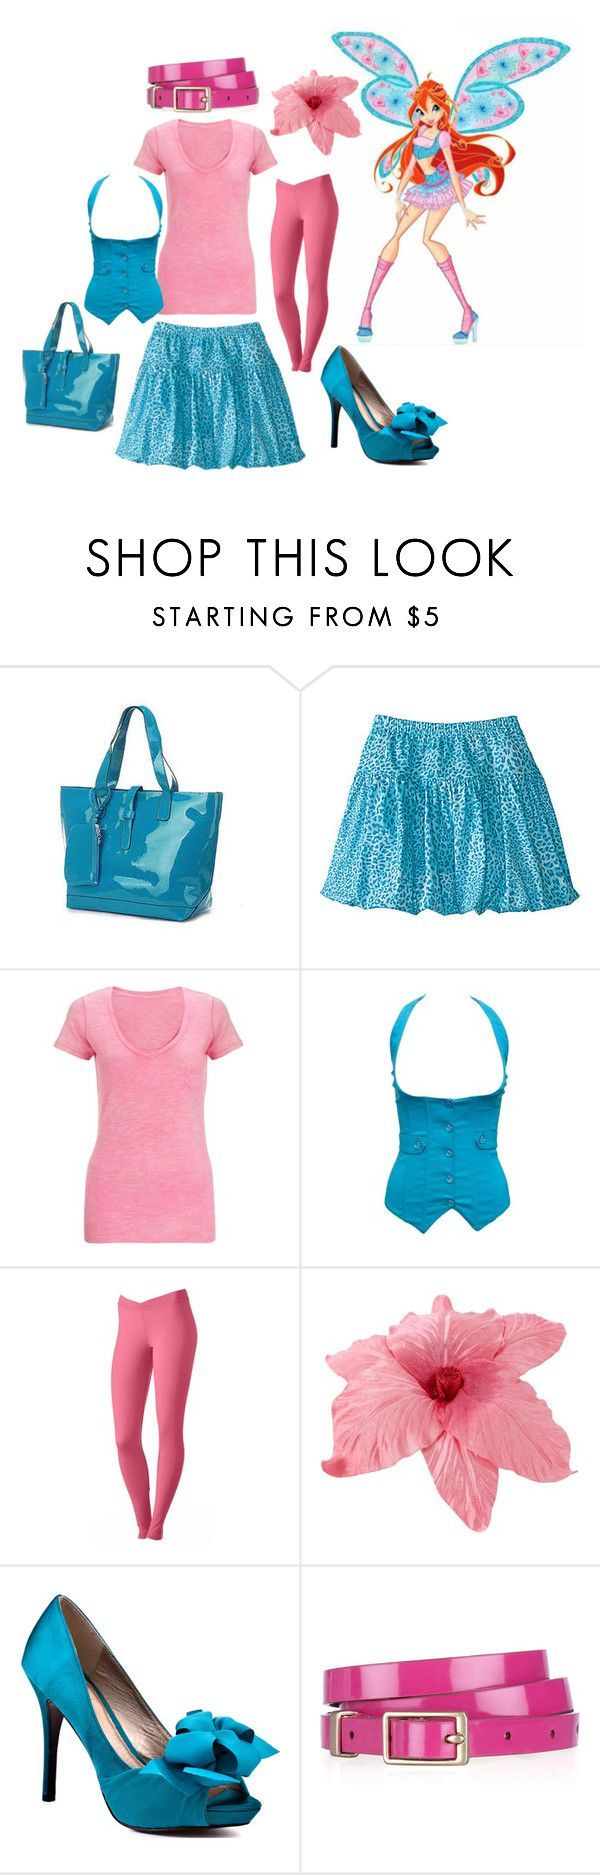 """""""Bloom - Believix"""" by catloverd ❤ liked on Polyvore featuring John Lewis, Cuddl Duds, Johnny Loves Rosie, Luichiny, J.Crew, winx, winx club and bloom"""